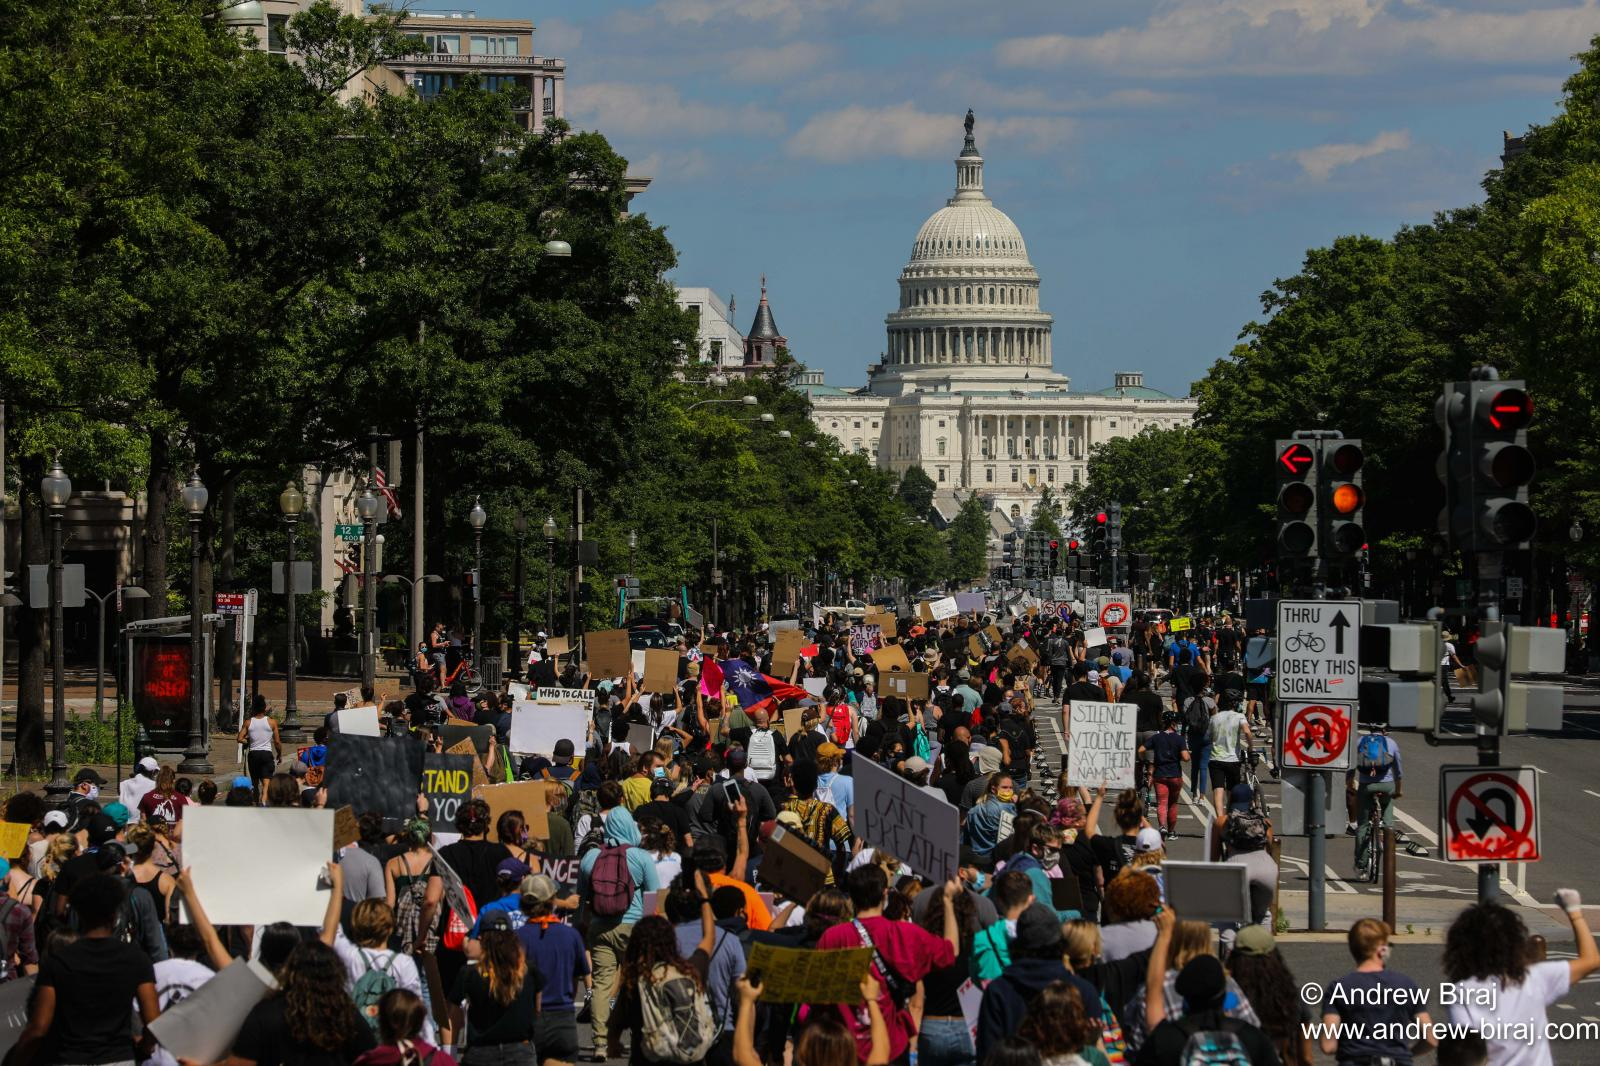 Demonstrators protest peacefully as they merge to the U.S Capitol in Washington, D.C., U.S.A. Thousands of people protest against the death in Minneapolis custody of George Floyd, in Washington on June 1, 2020.